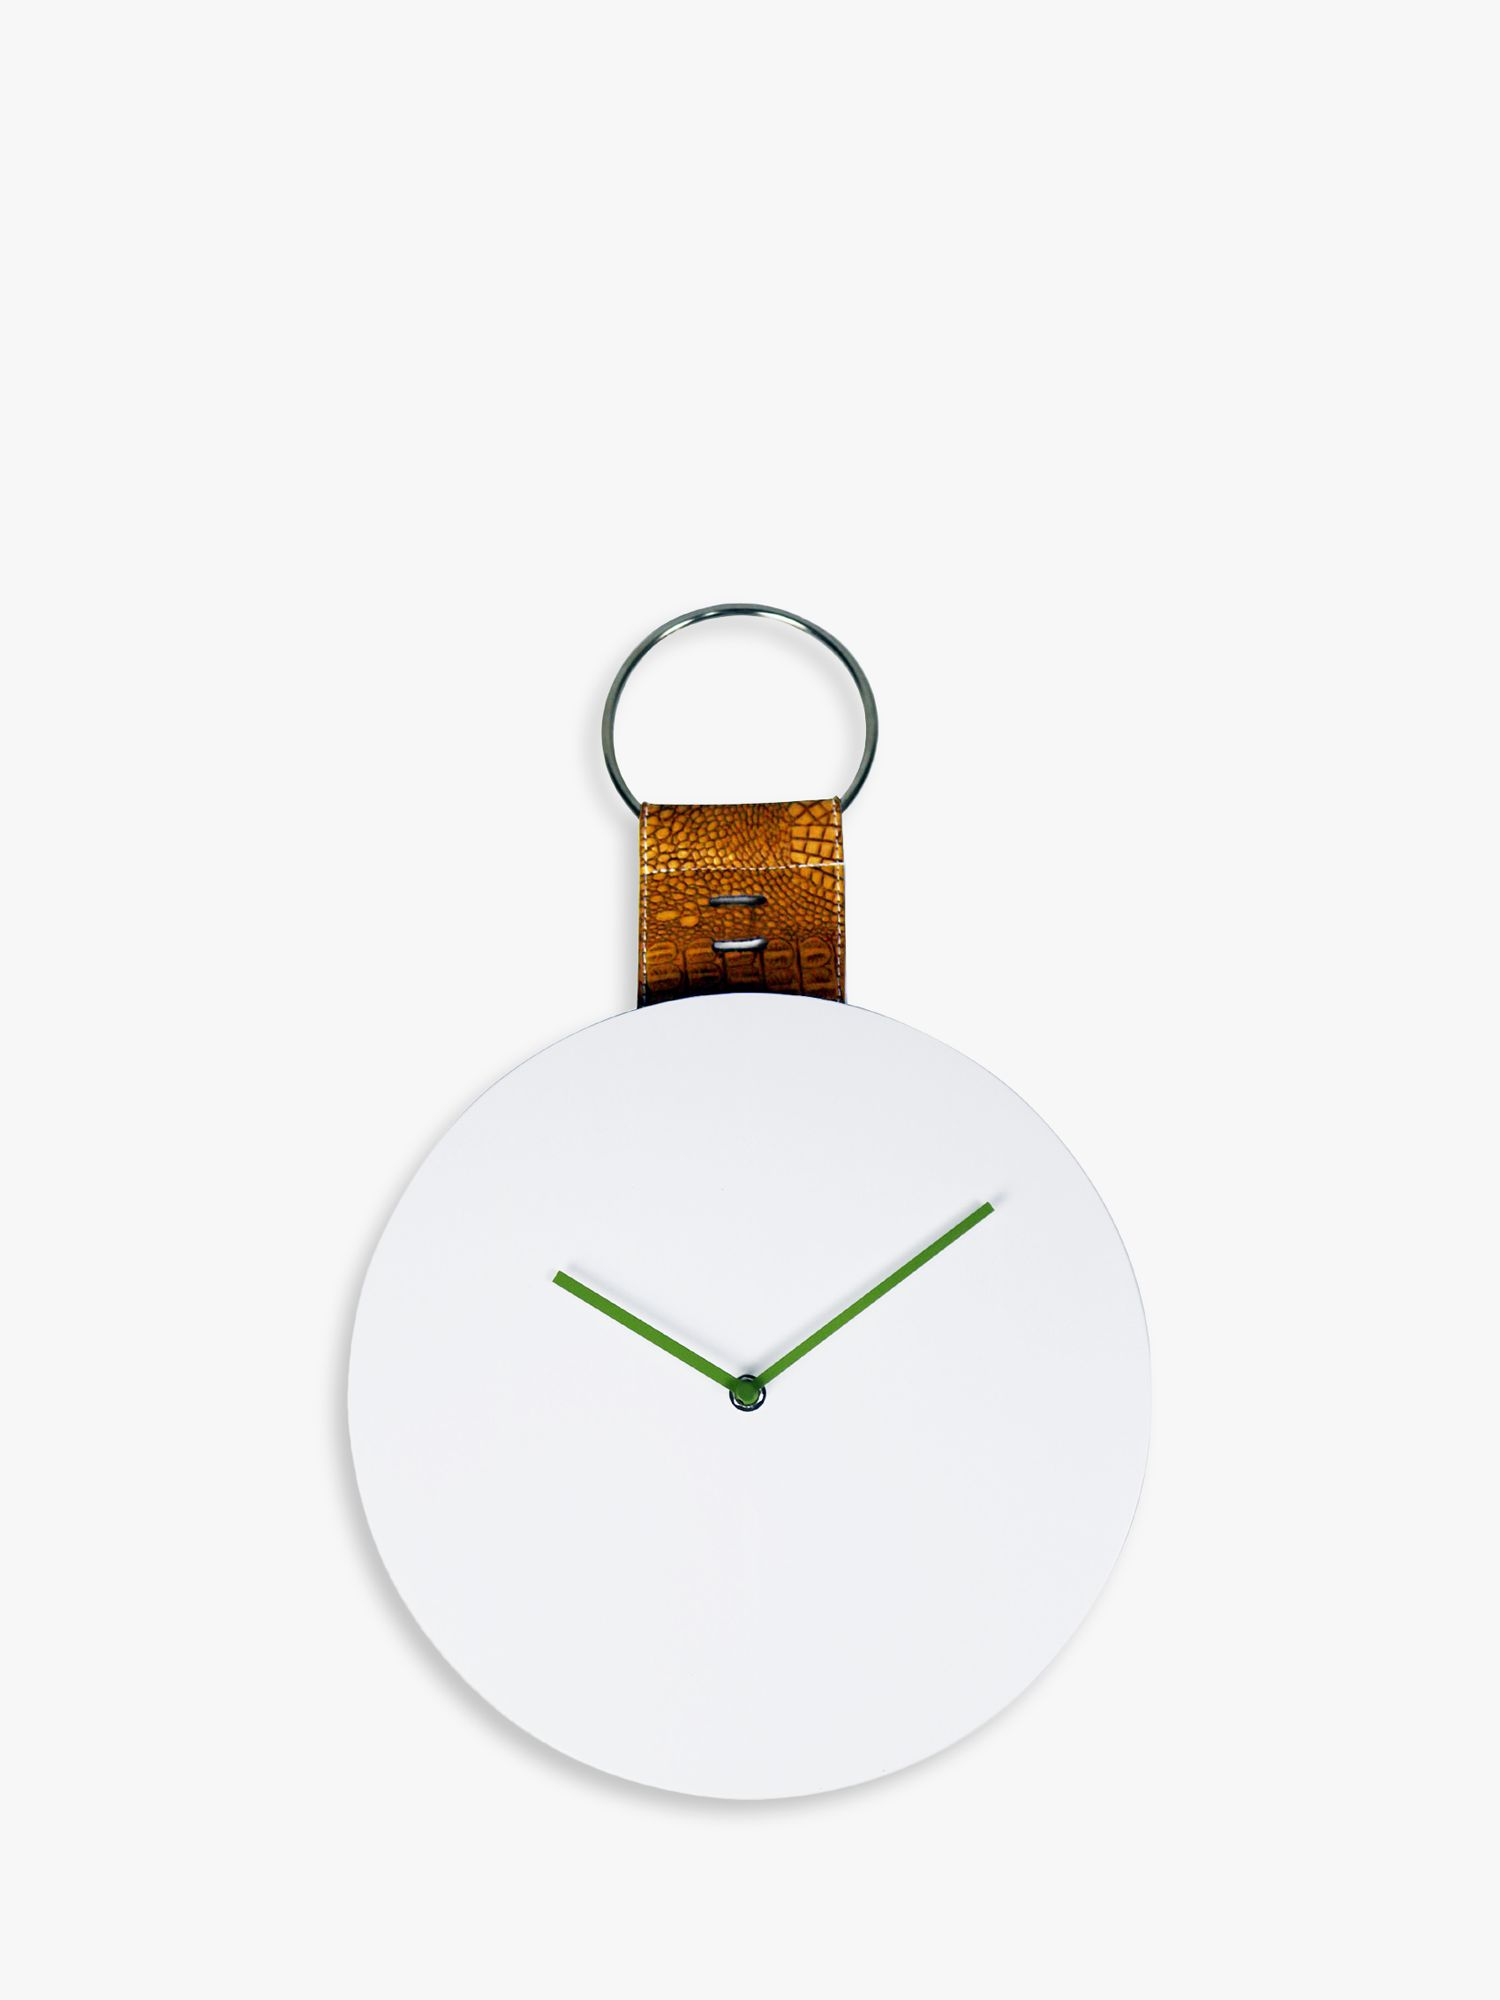 Brookpace Brookpace Modern Wood Leather-Effect Hanging Wall Clock, 30cm, White/Natural